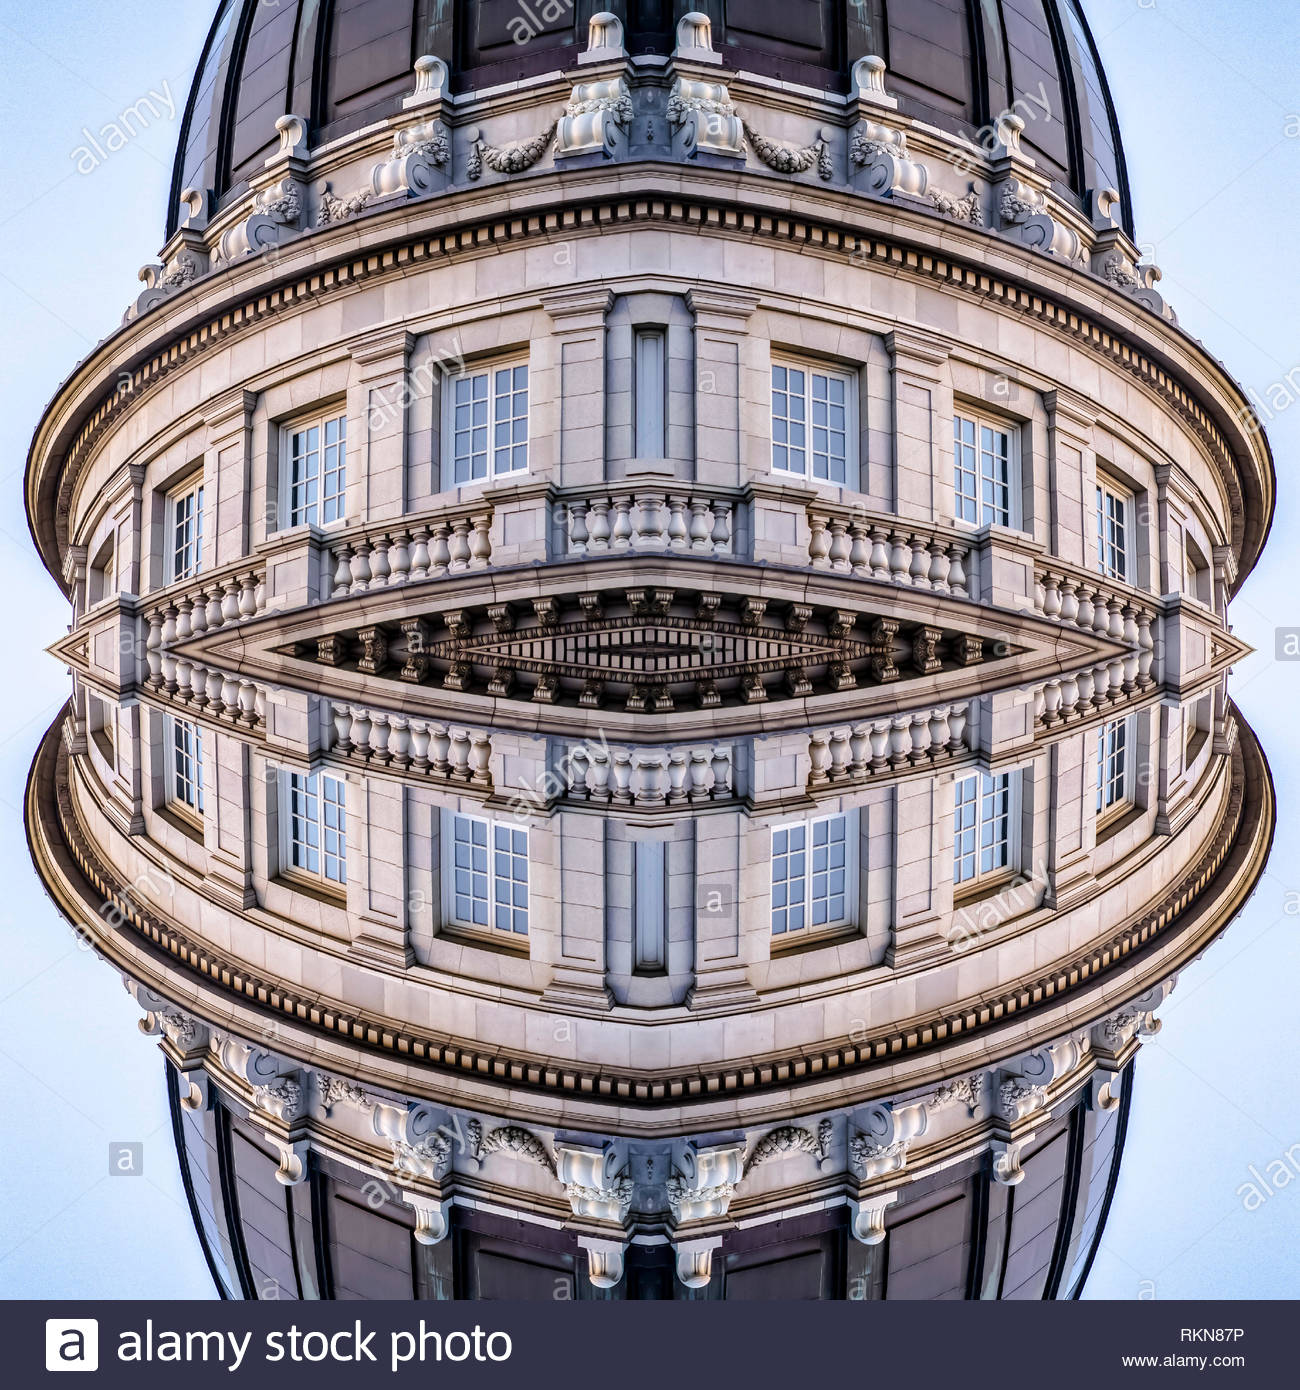 reflection-of-utah-state-capital-building-vertical-geometric-kaleidoscope-pattern-on-mirrored-axis-of-symmetry-reflection-colorful-shapes-as-a-wallp-RKN87P.jpg